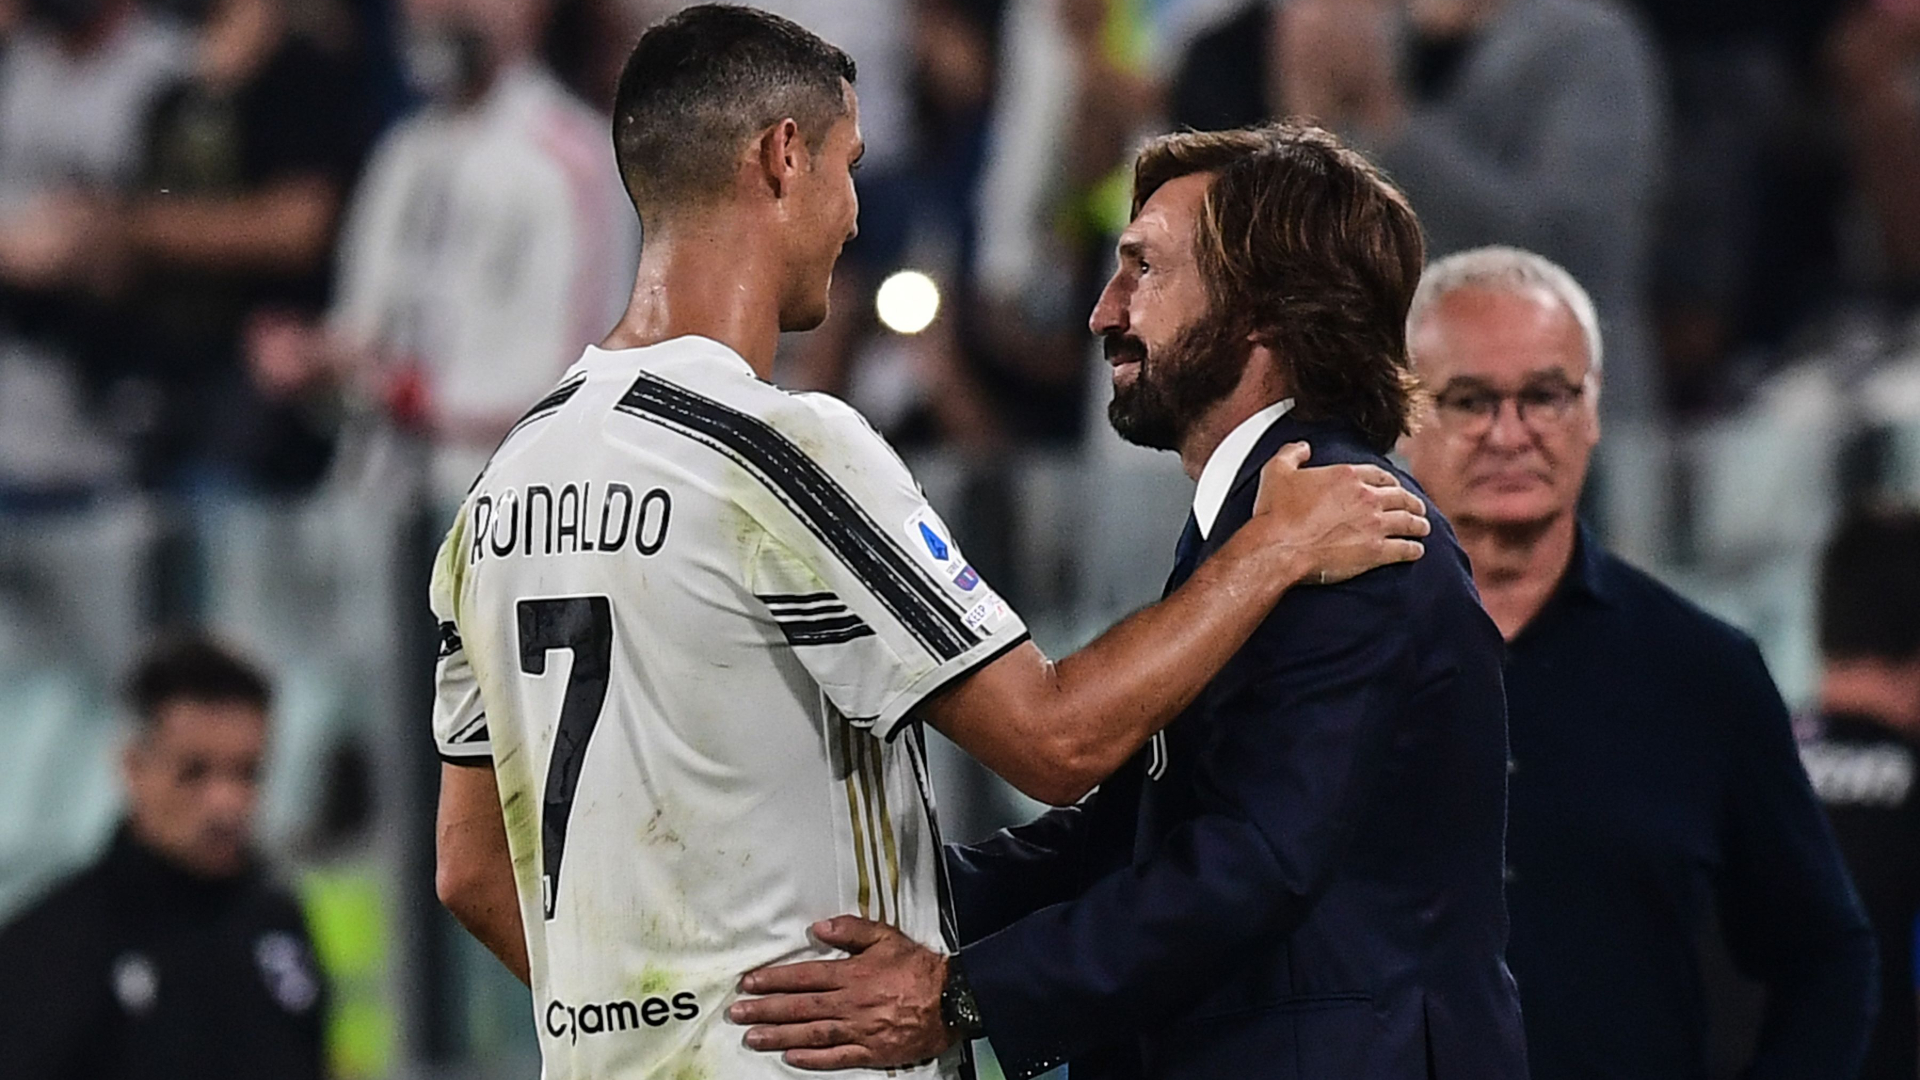 Ronaldo is the first to Juventus training and last to leave - Pirlo